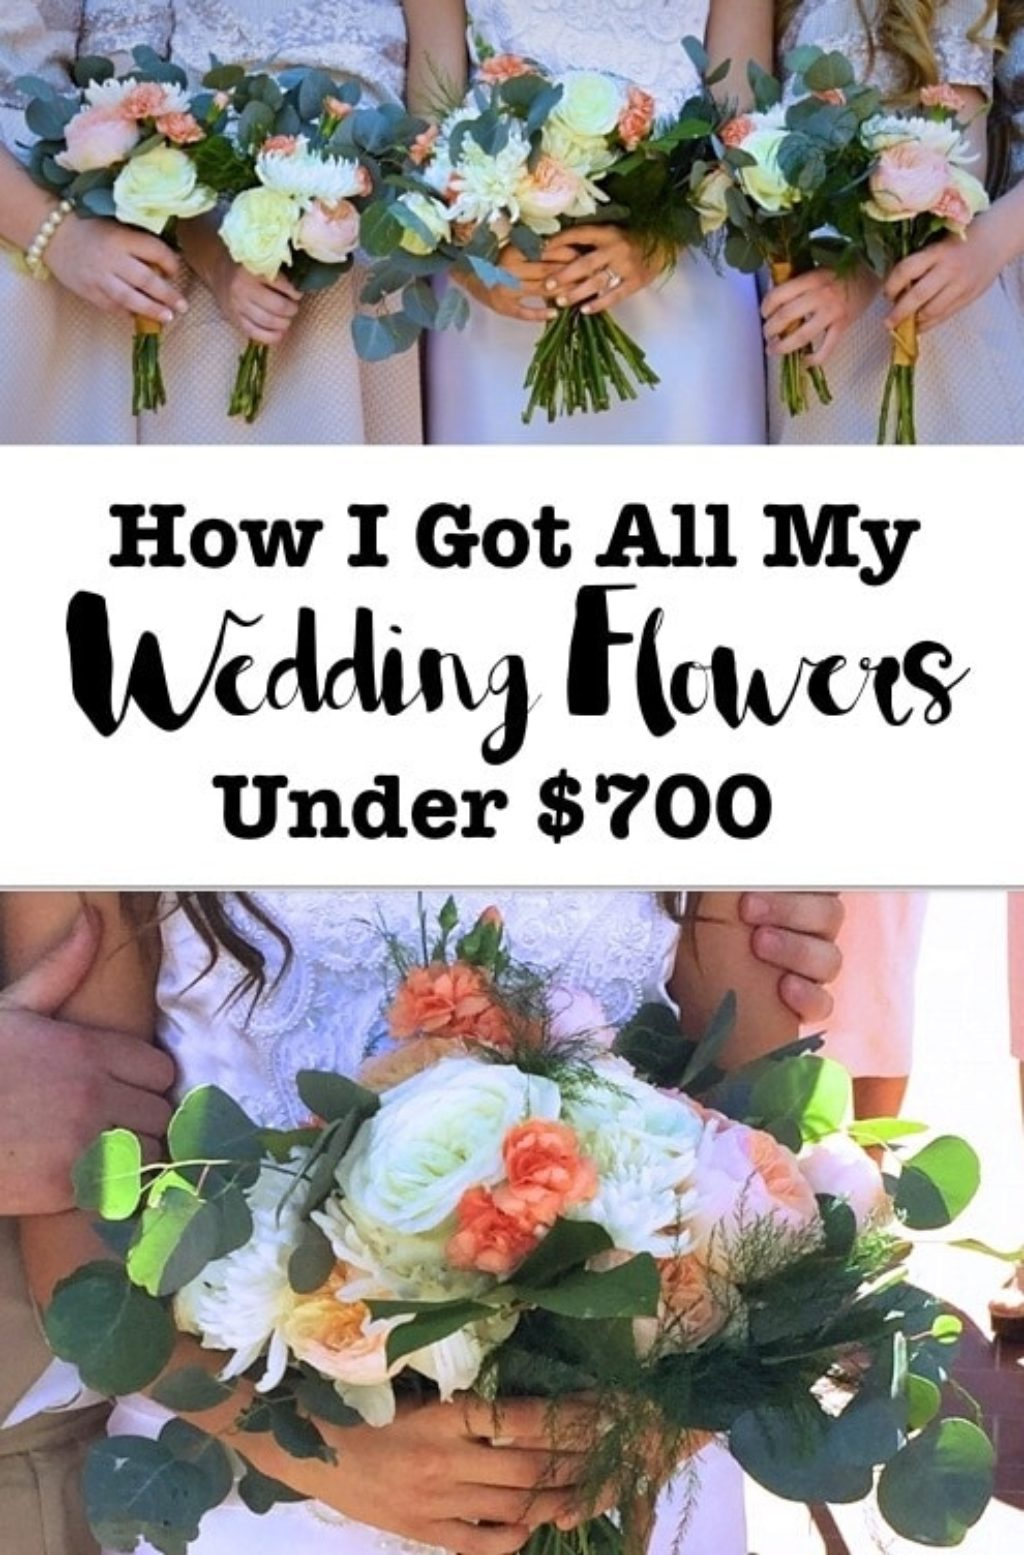 How To Save Money On Your Wedding Flowers Cassie Scroggins